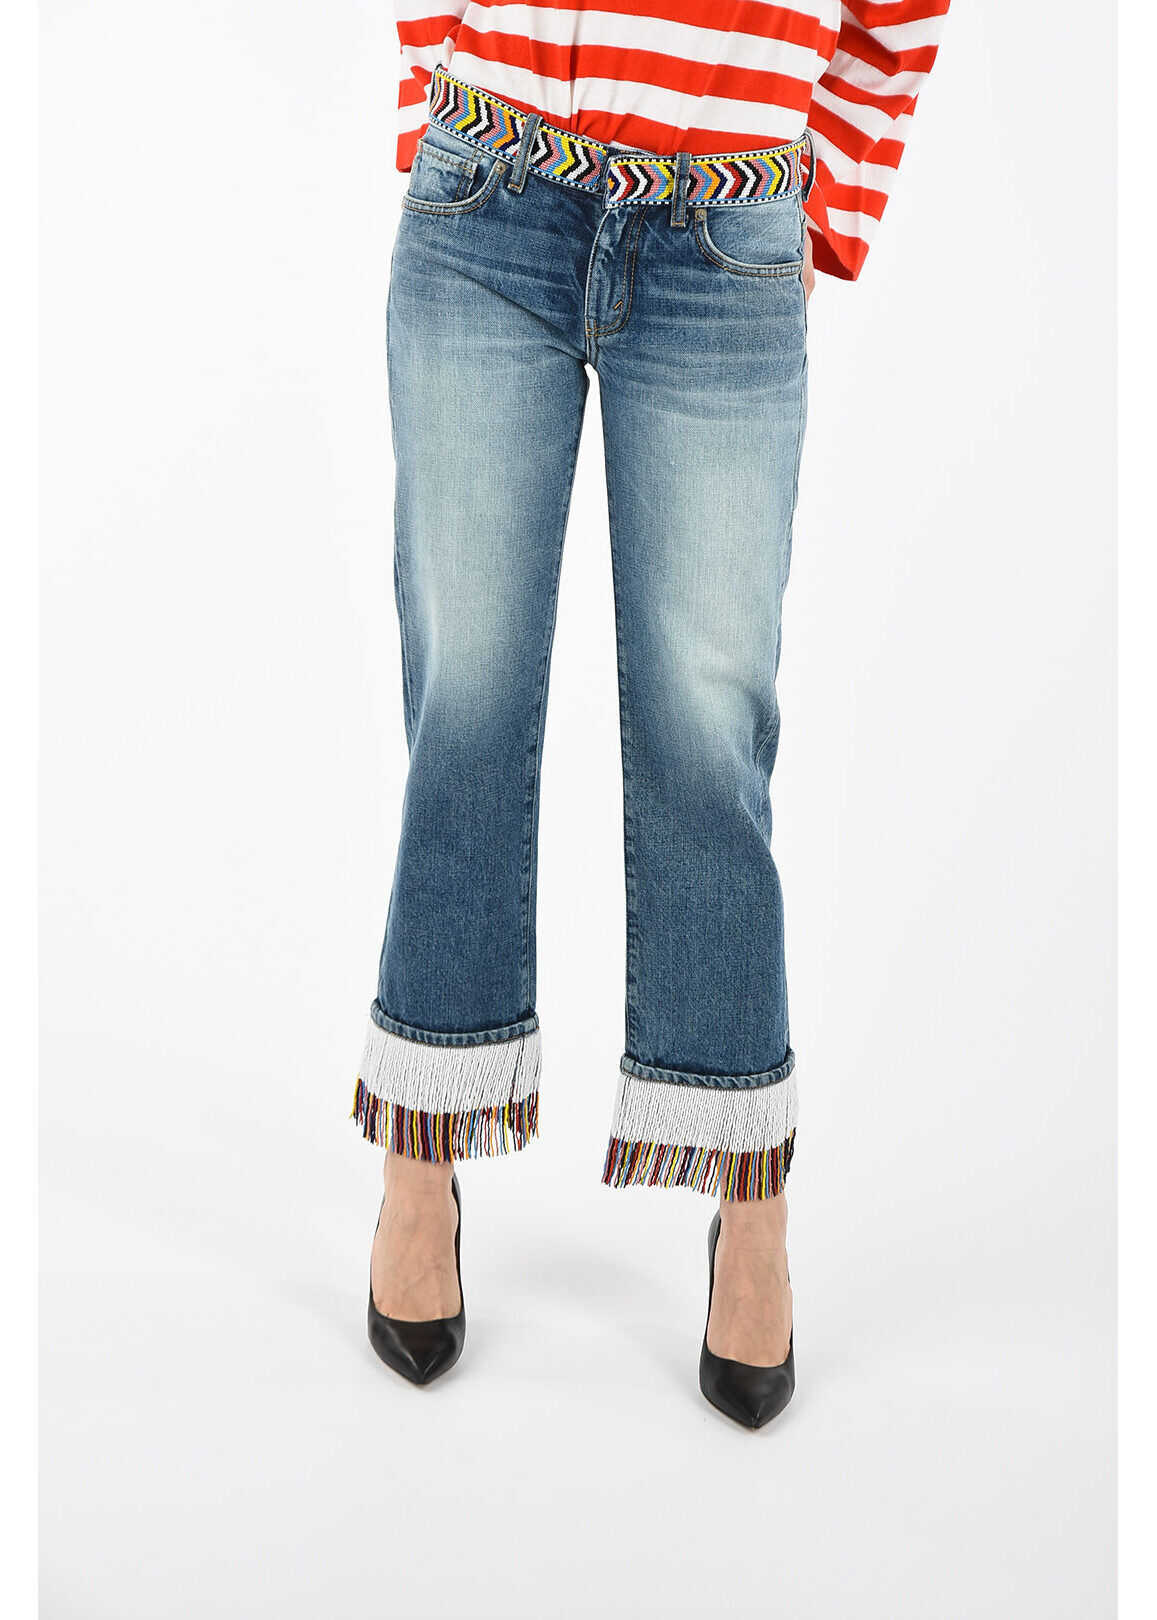 ALANUI Tapered Jeans with Beaded Embroideries 20 cm BLUE